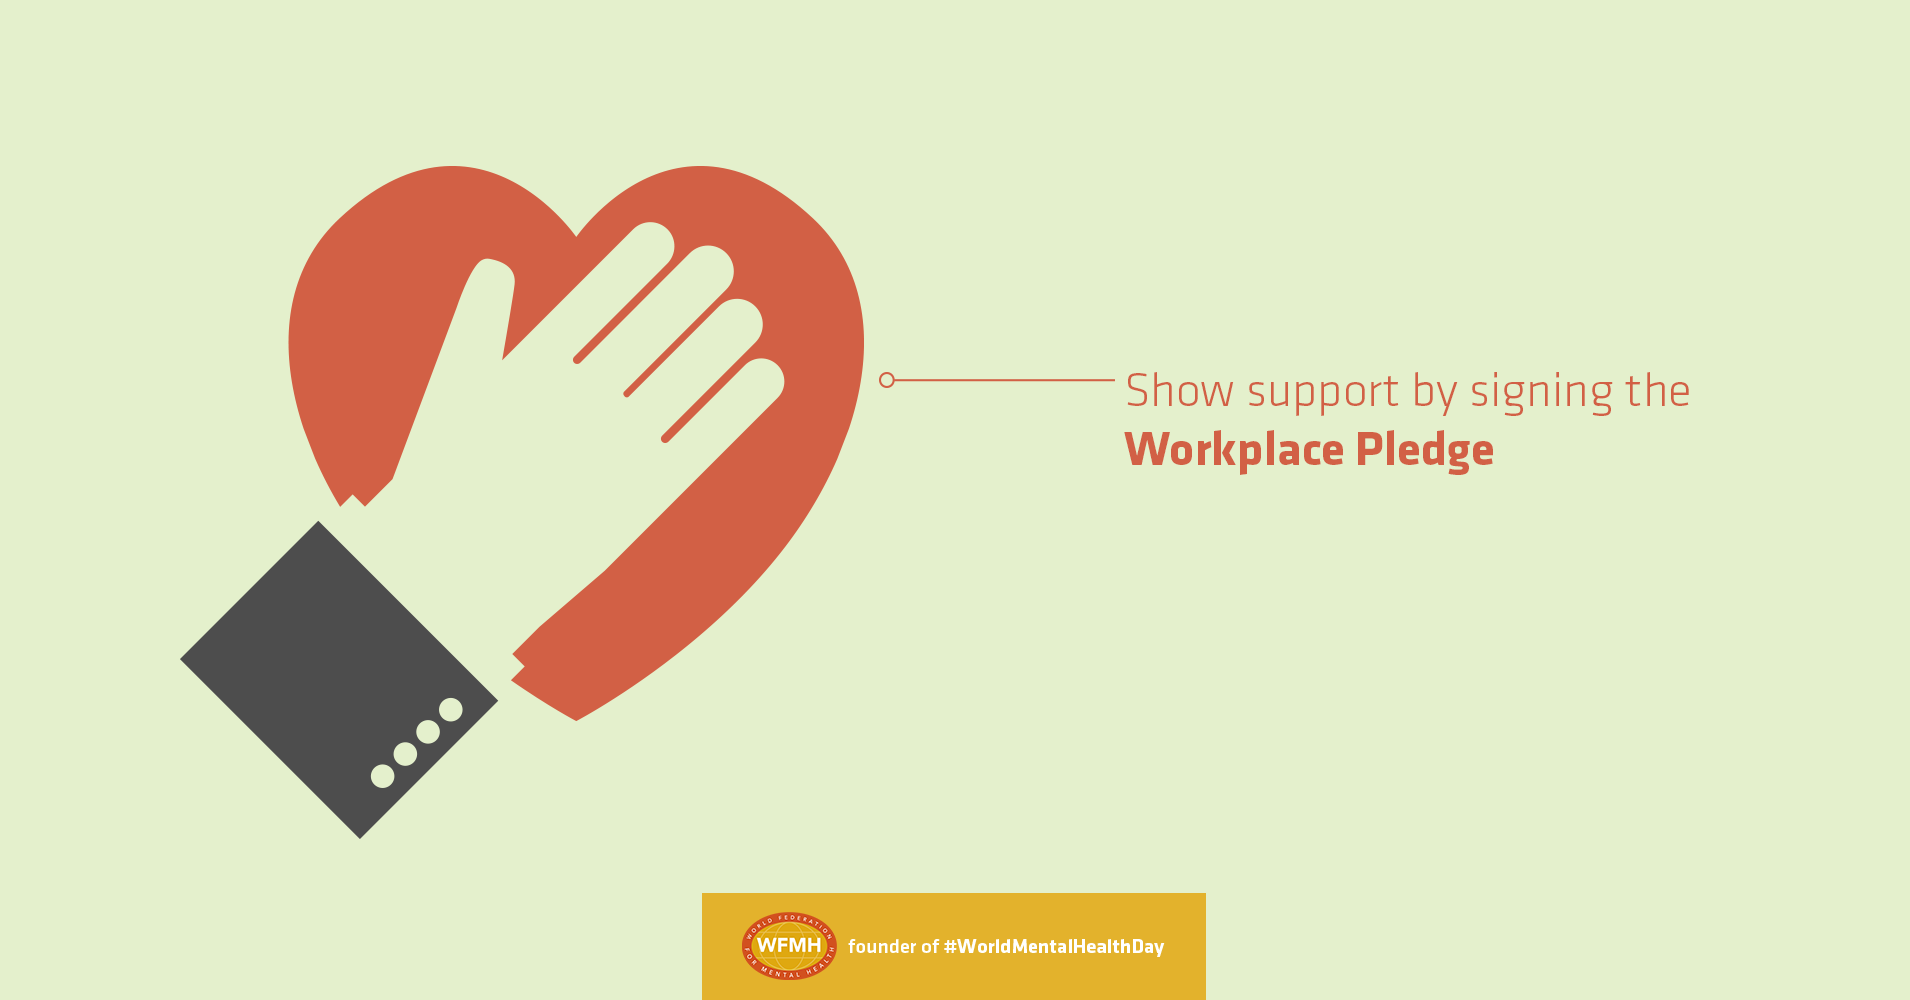 Download u0027Workplace Pledgeu0027 image to share on your social media profiles - Pledge PNG